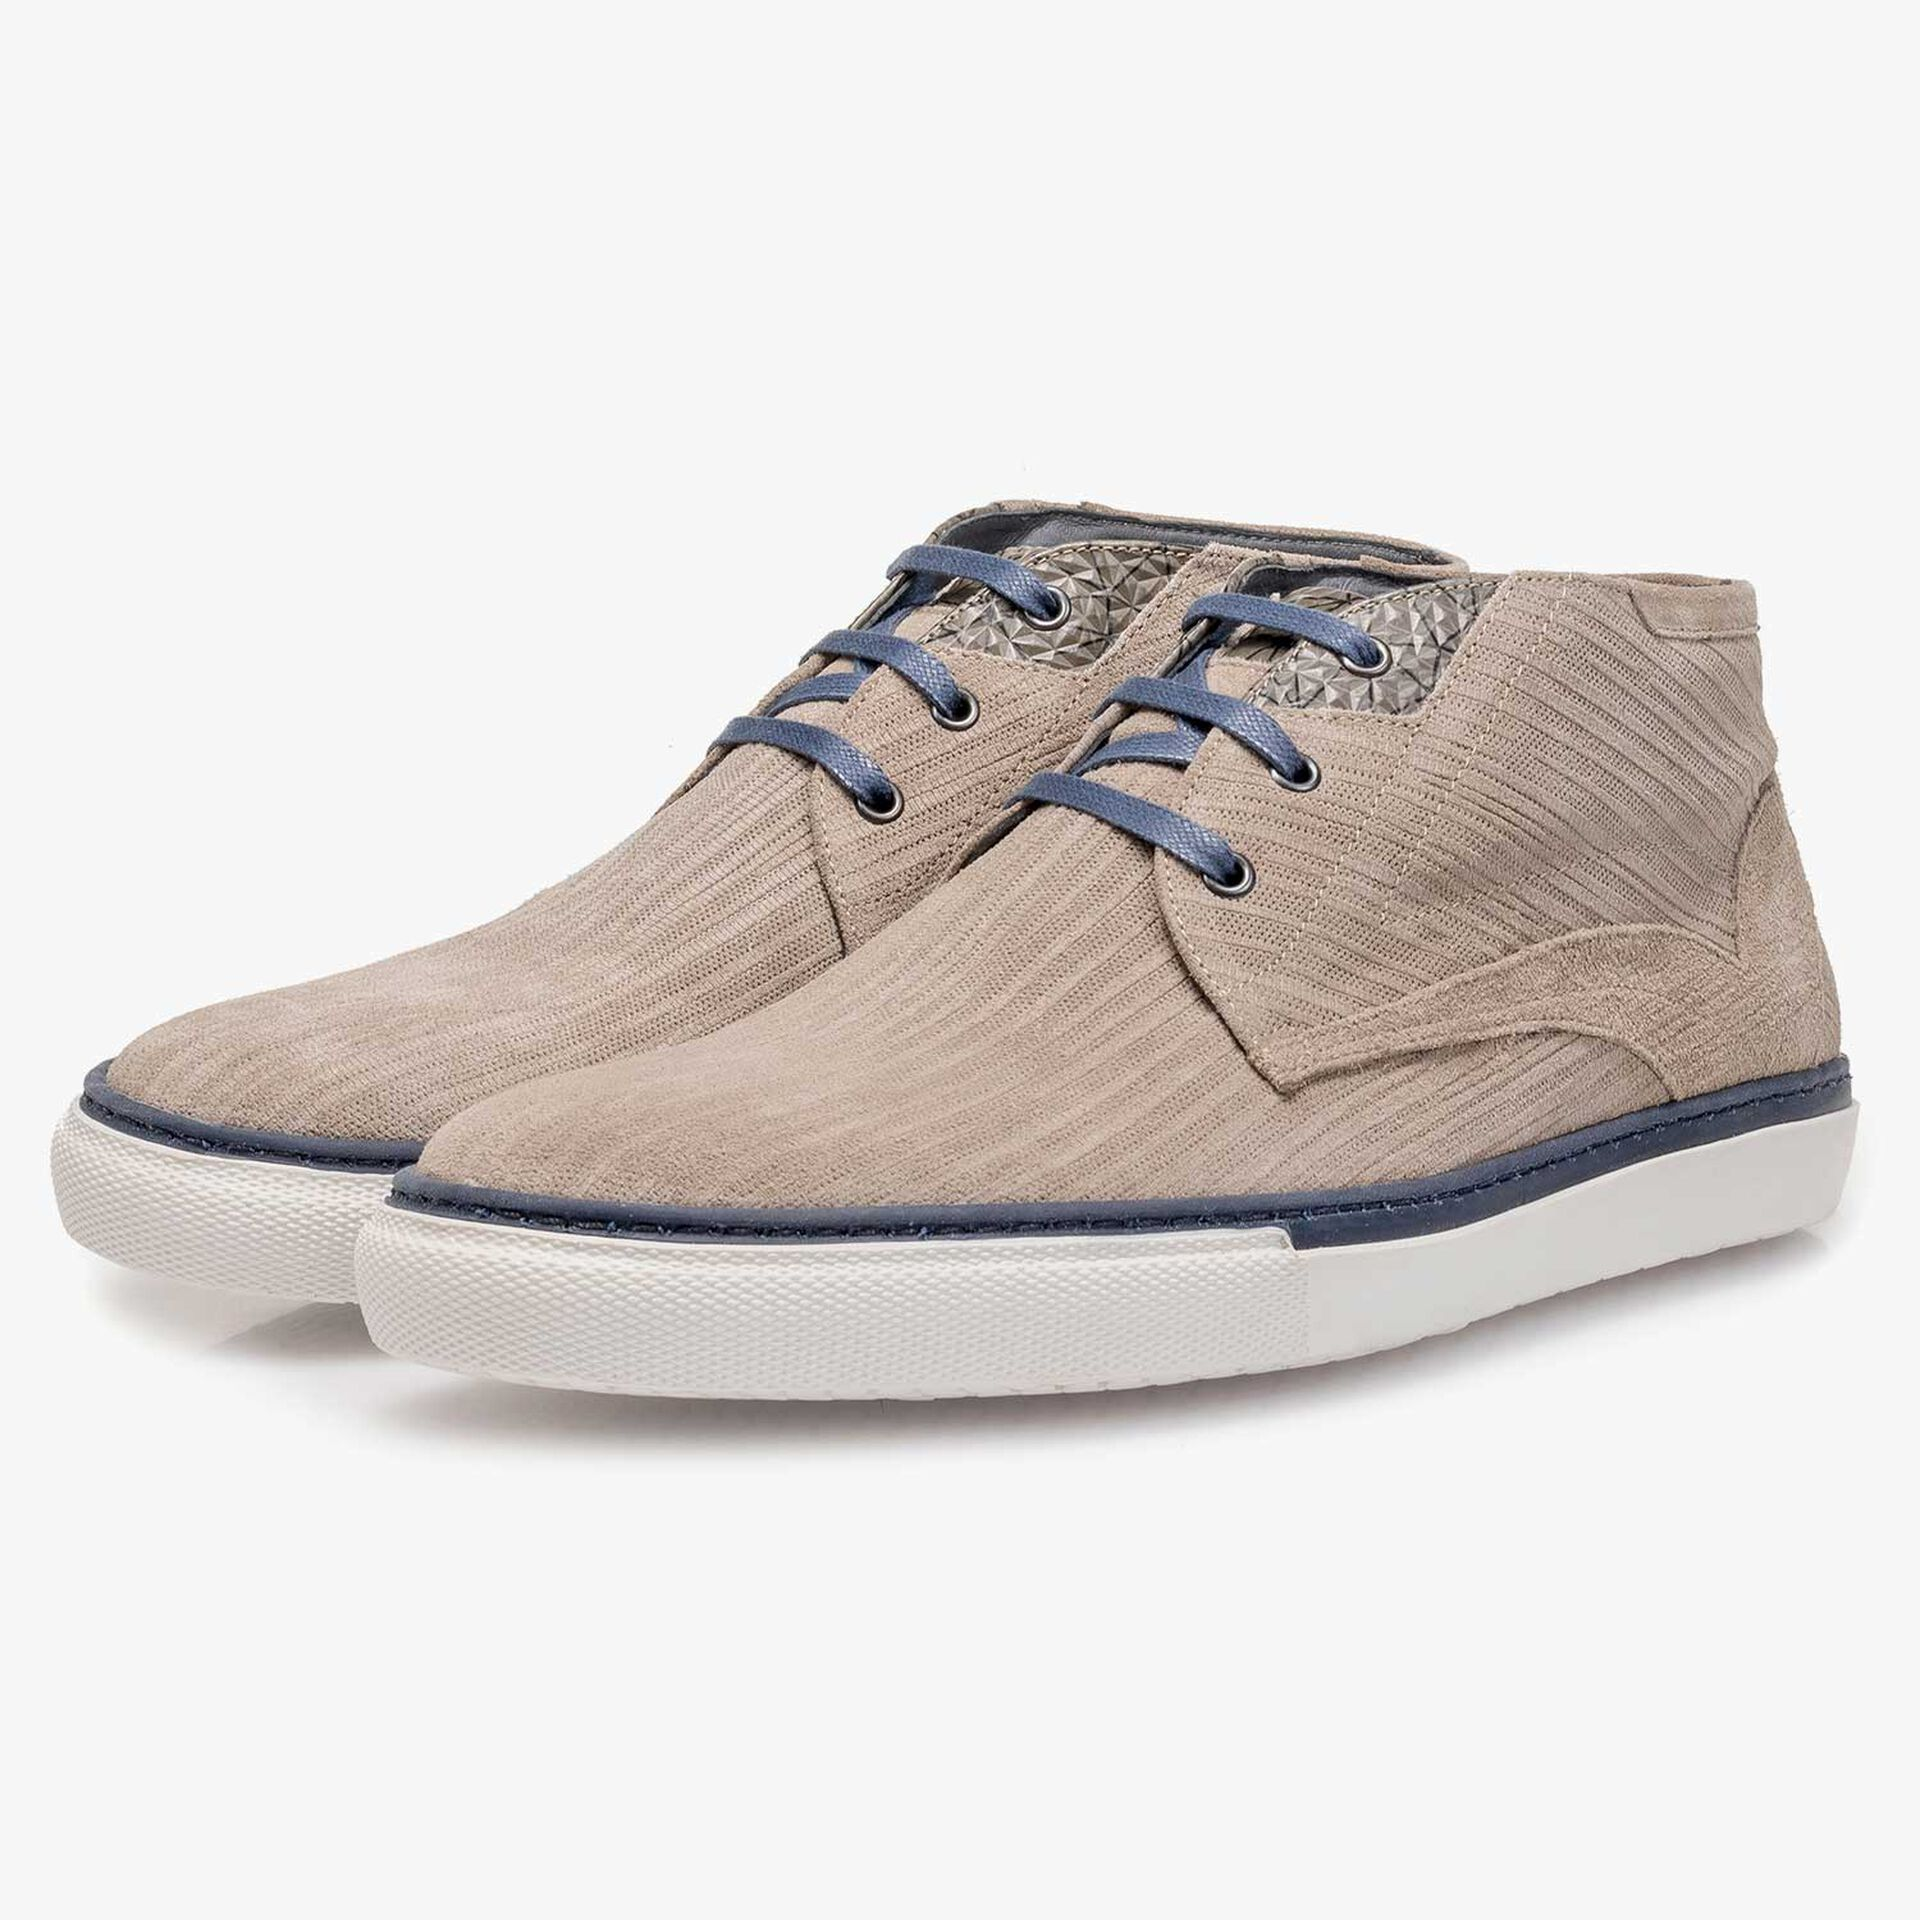 Taupe-coloured calf suede leather lace shoe